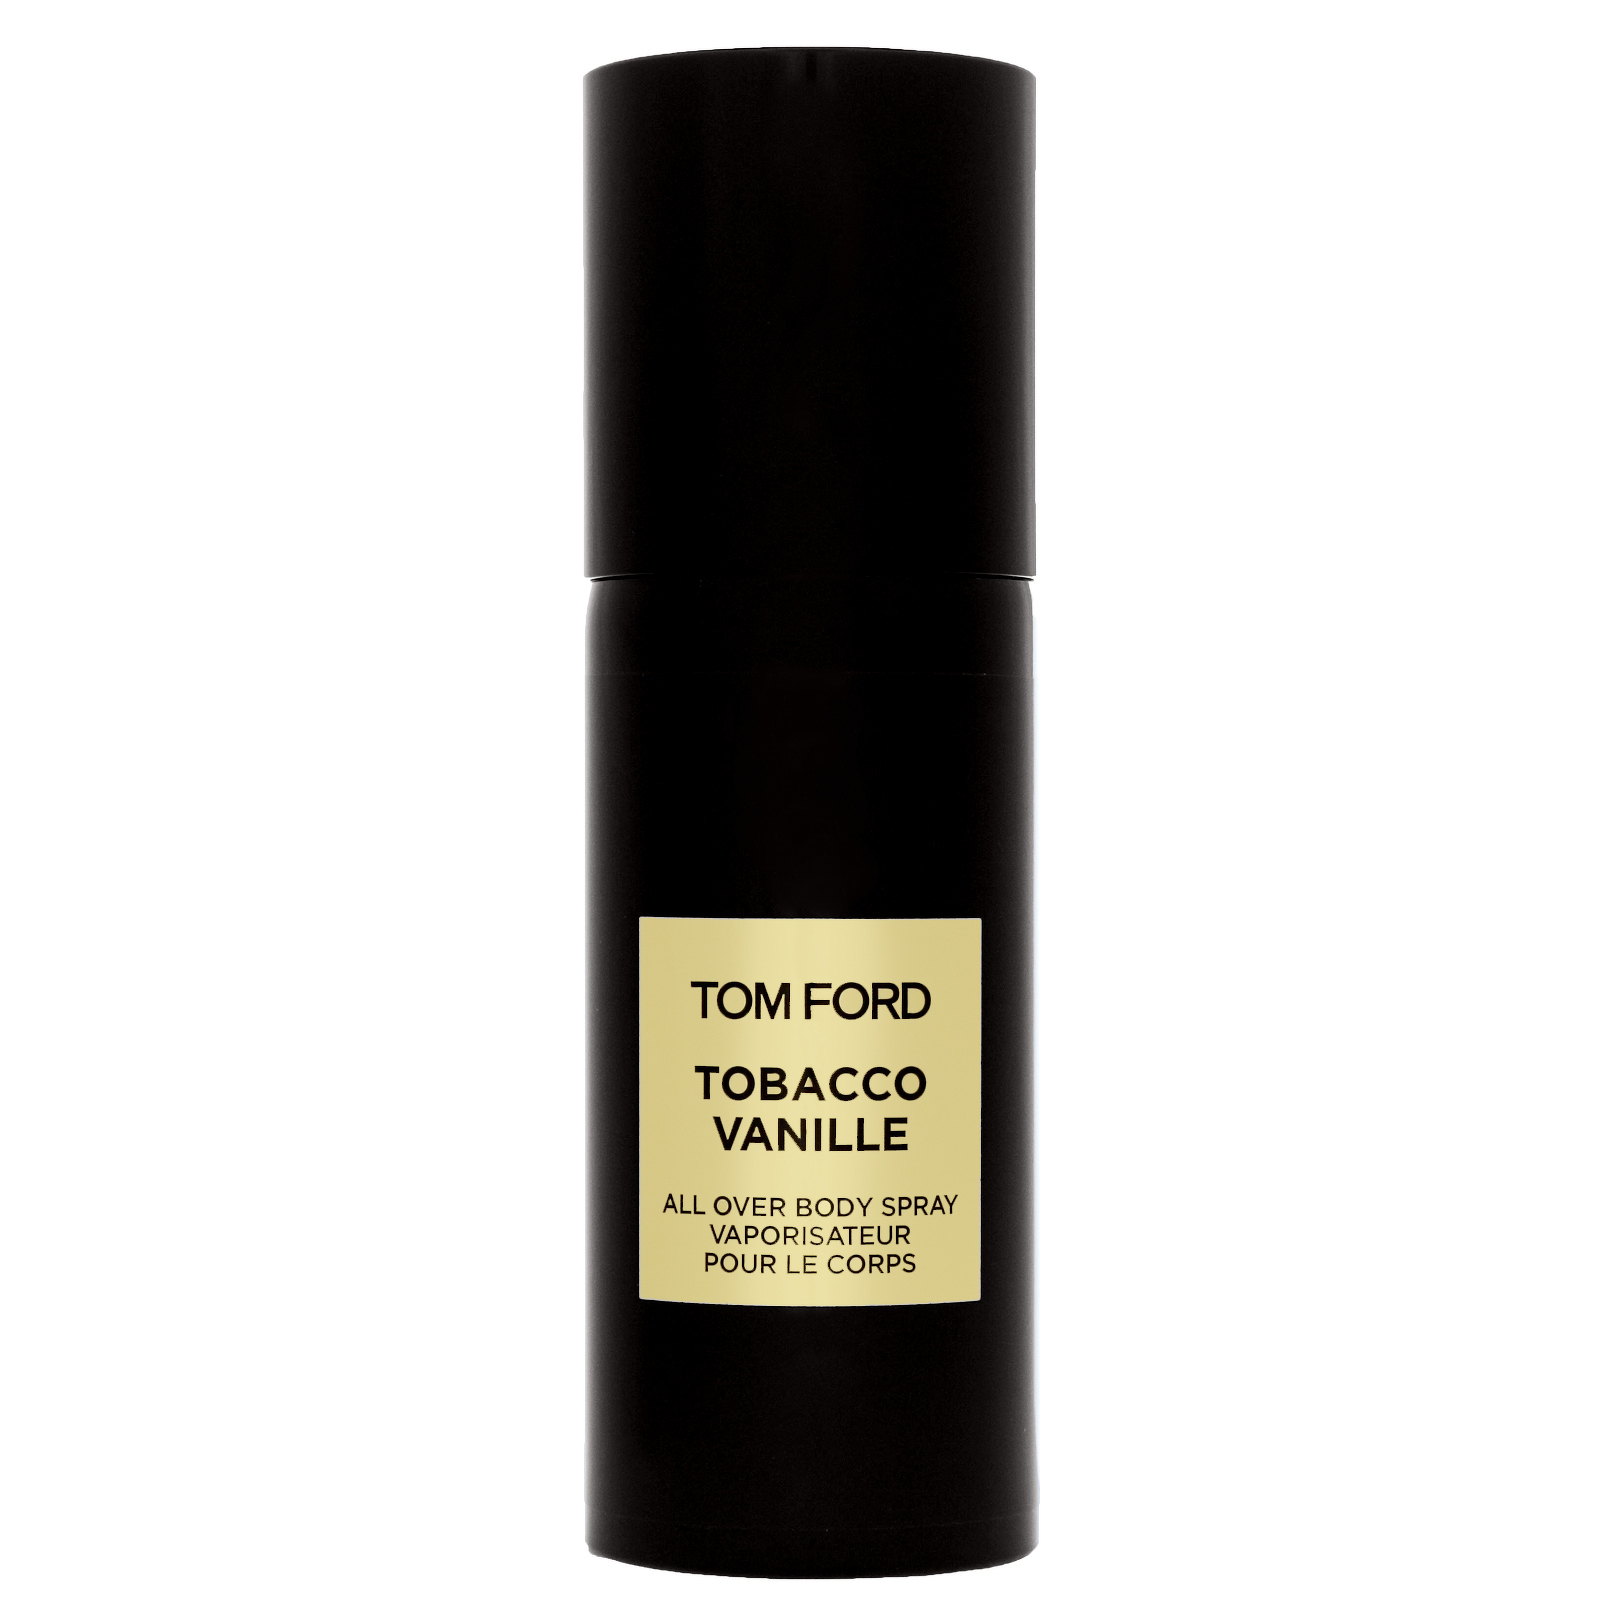 Tom Ford Private Blend Tobacco Vanille  All Over Body Spray 150ml